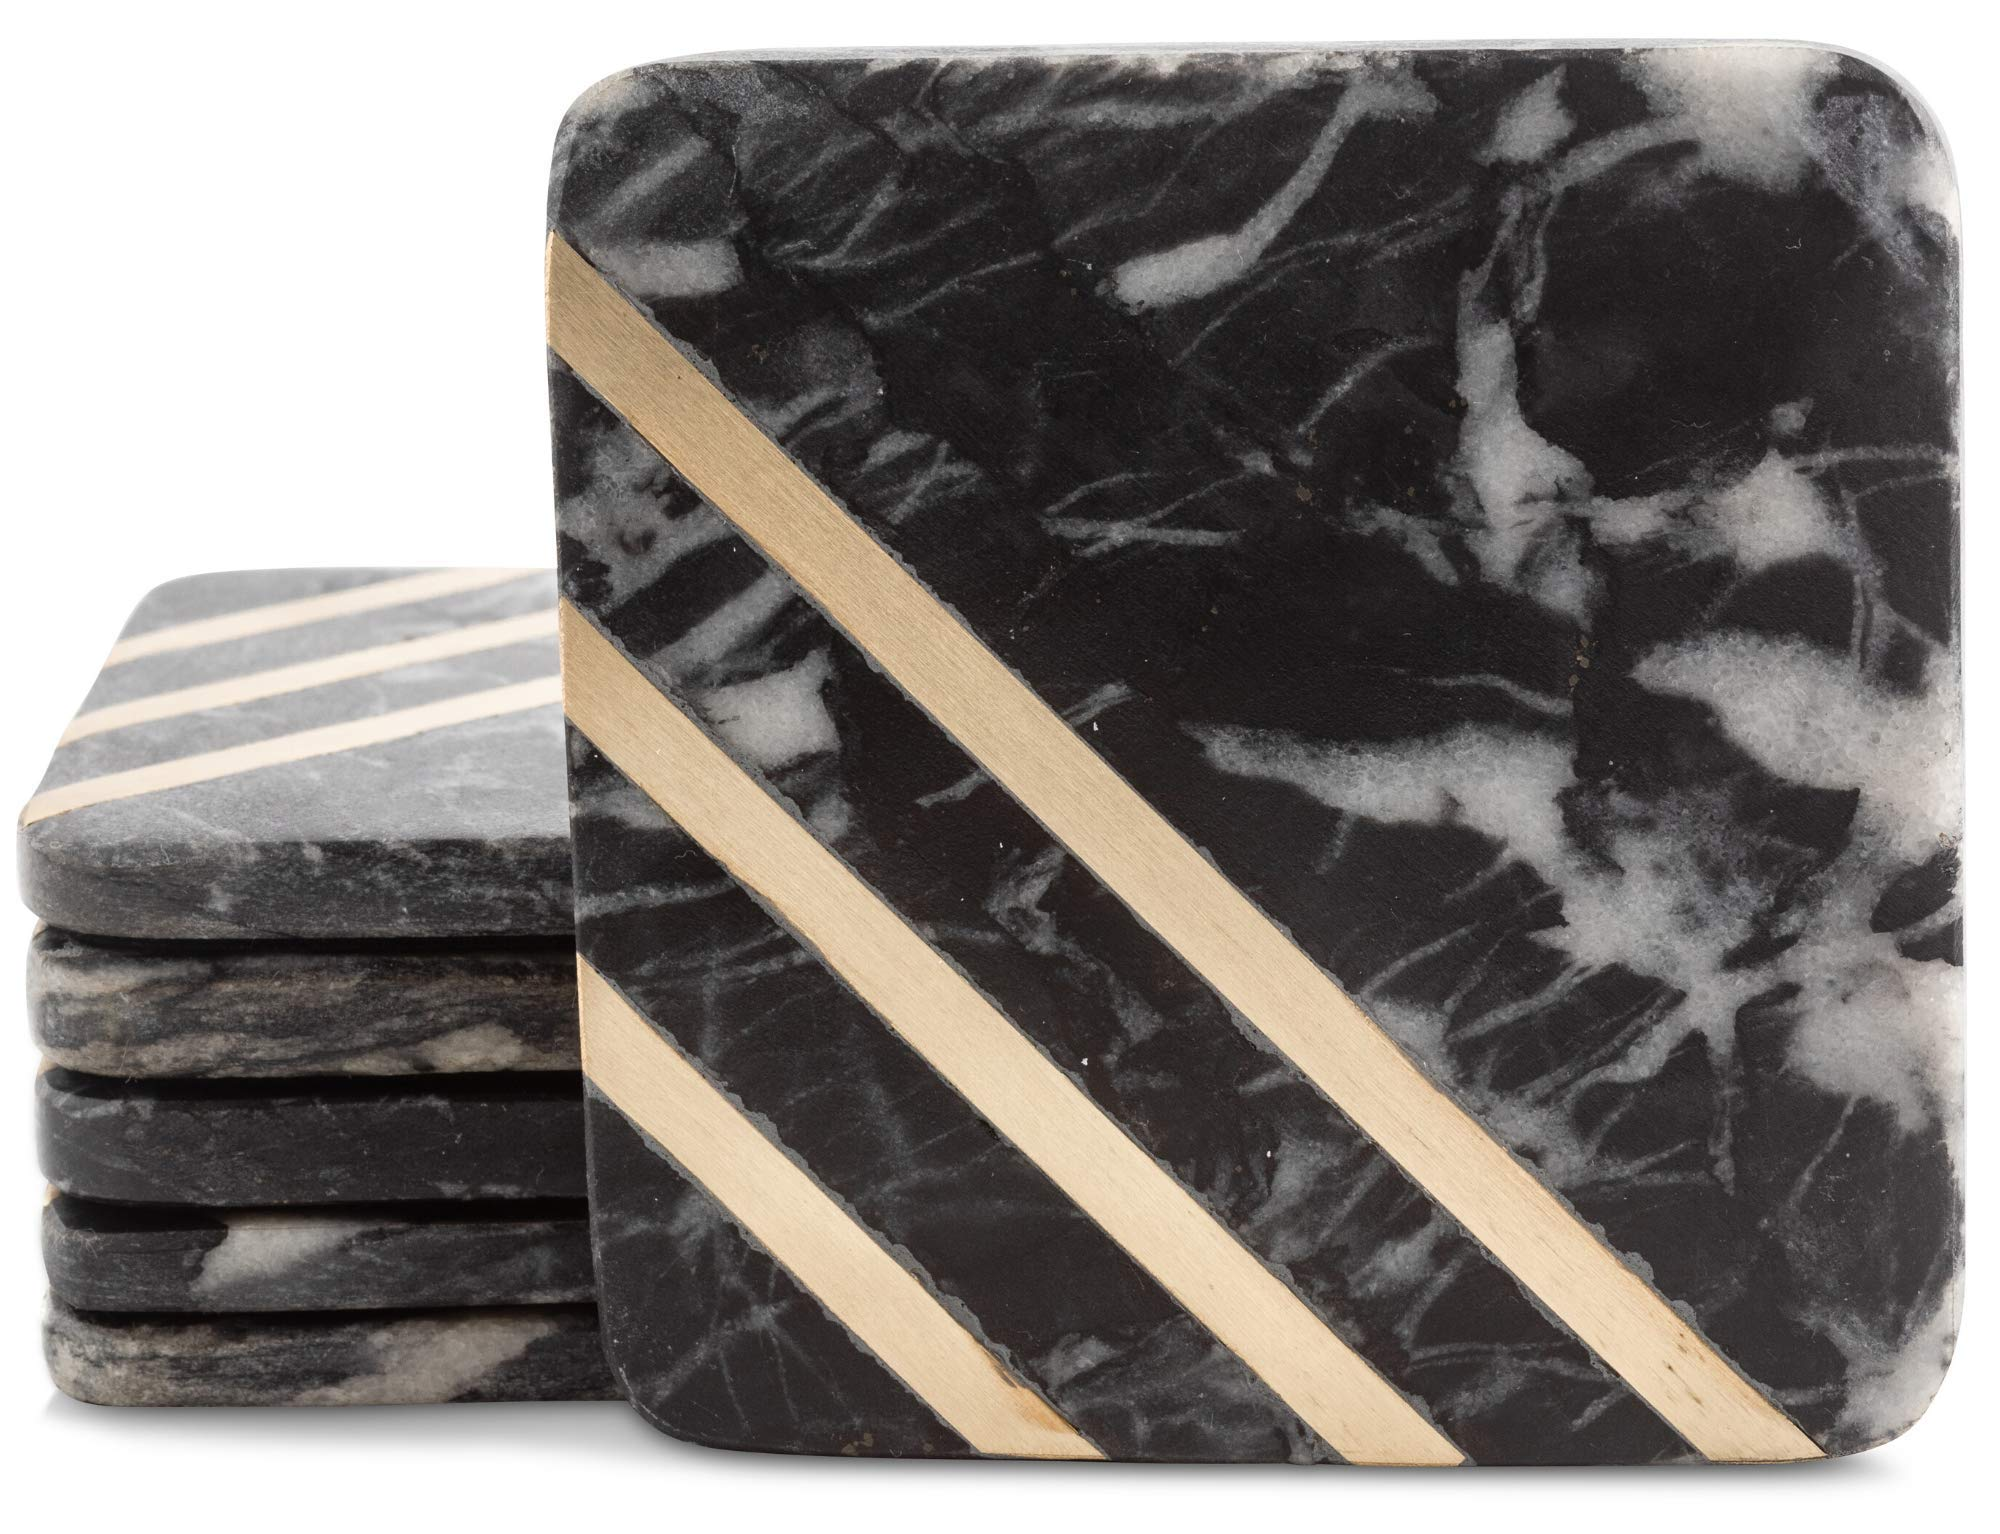 Cork Mill Marble Coasters For Drinks Handcrafted Modern Coasters Square Drink Coasters Black Marble Coasters